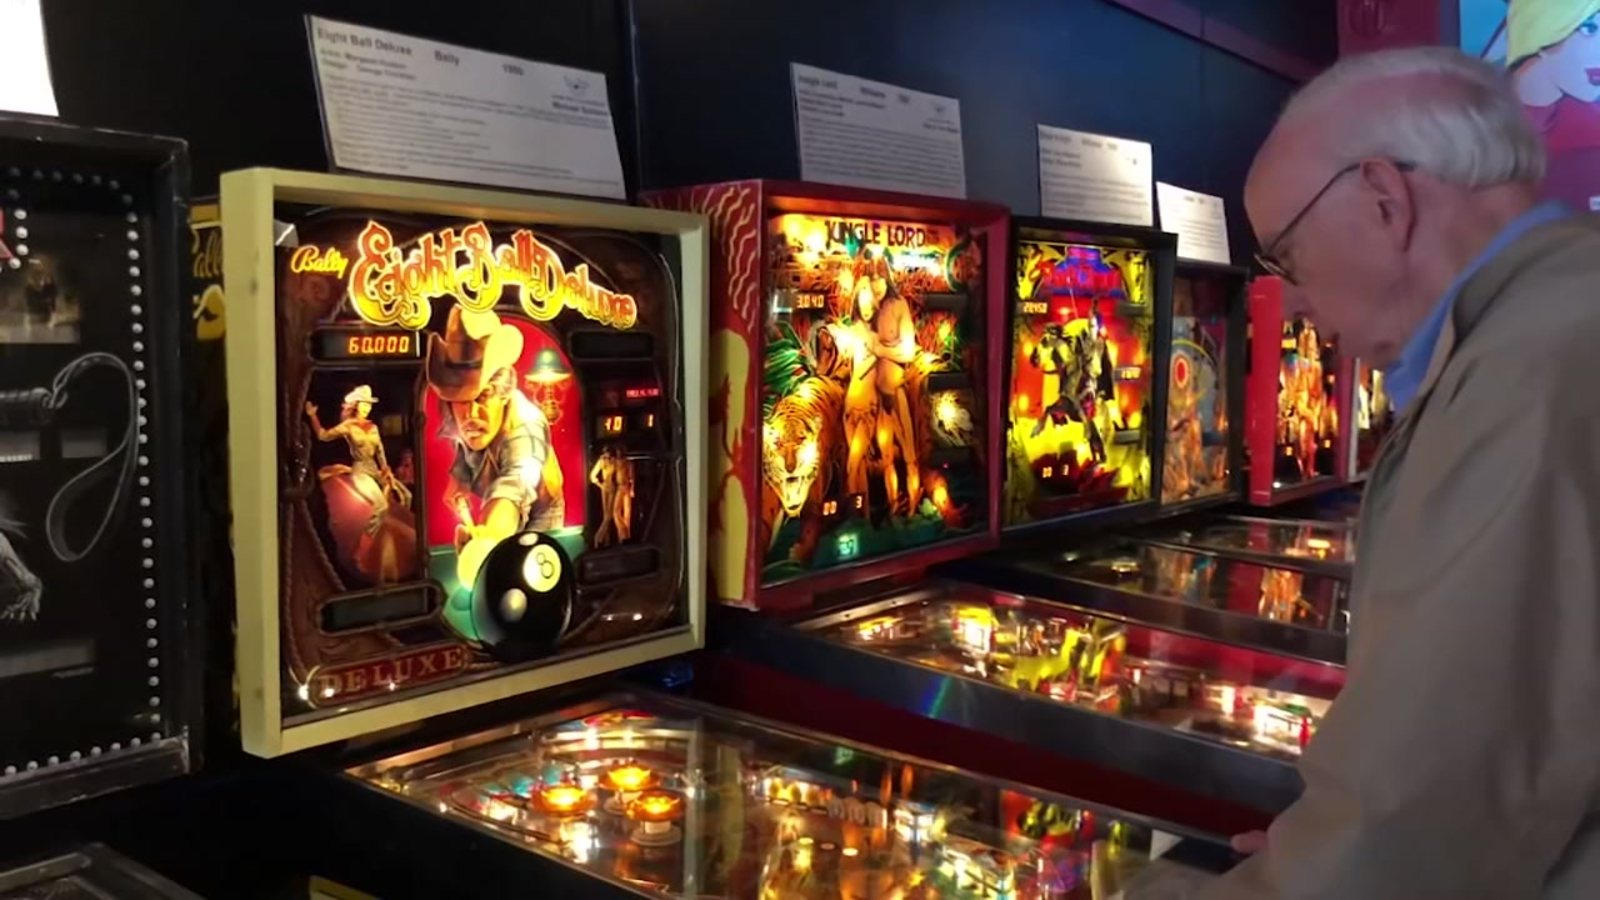 Alameda's Pacific Pinball Museum offers rare look into history, evolution of the pinball machine - ABC7 San Francisco